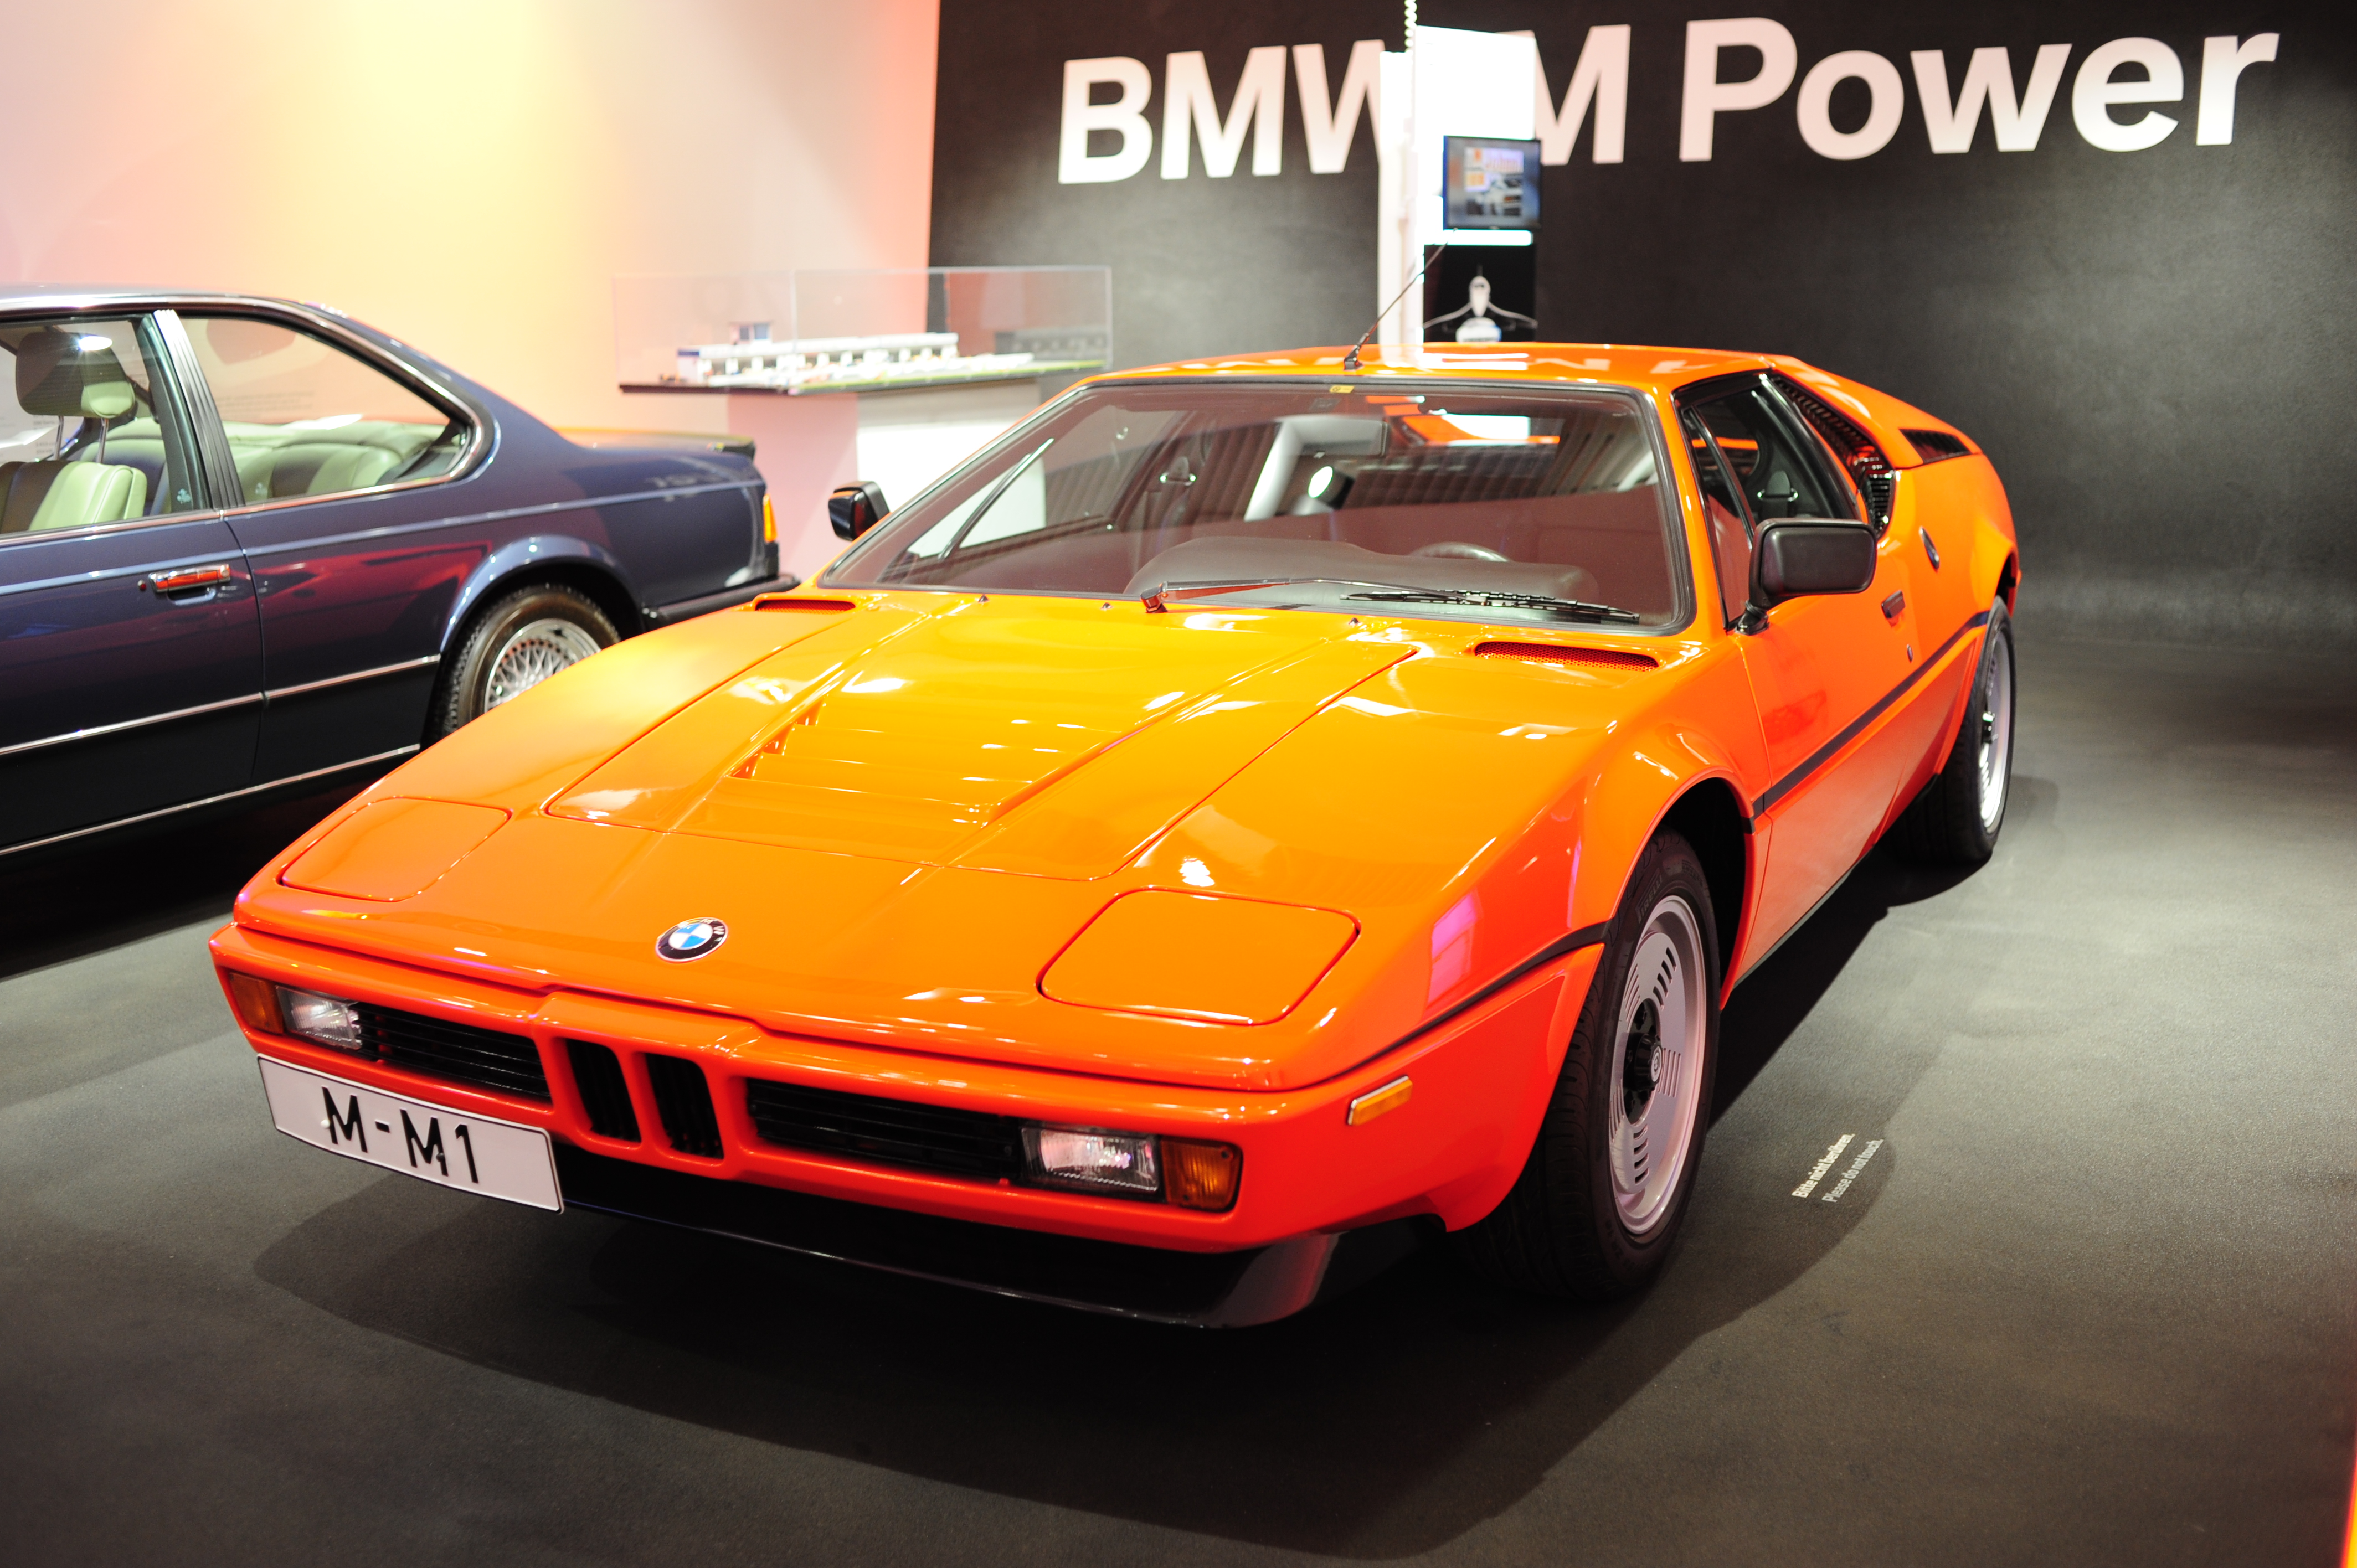 M1 in the BMW museum